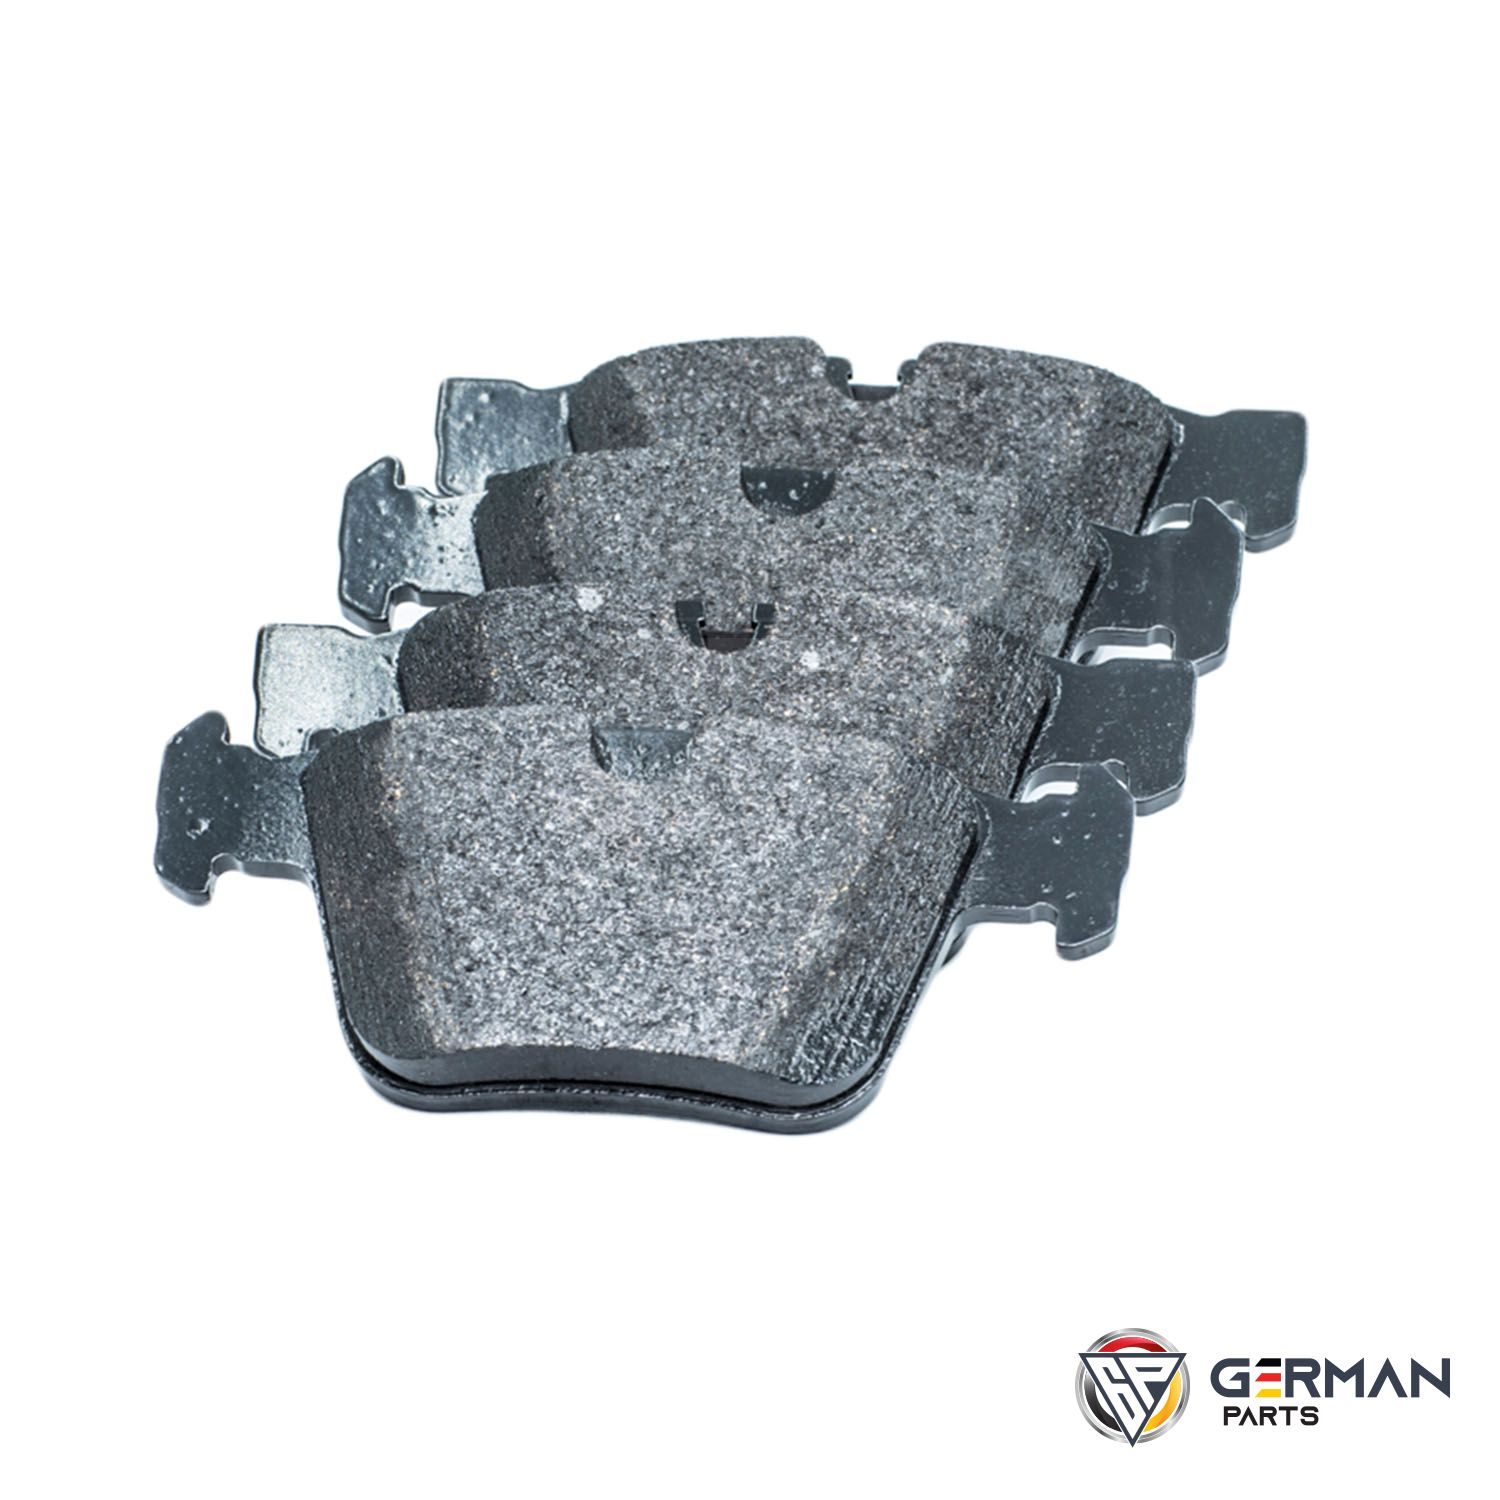 Buy Genuine Mercedes Benz Rear Brake Pad Set 1644202420 - German Parts